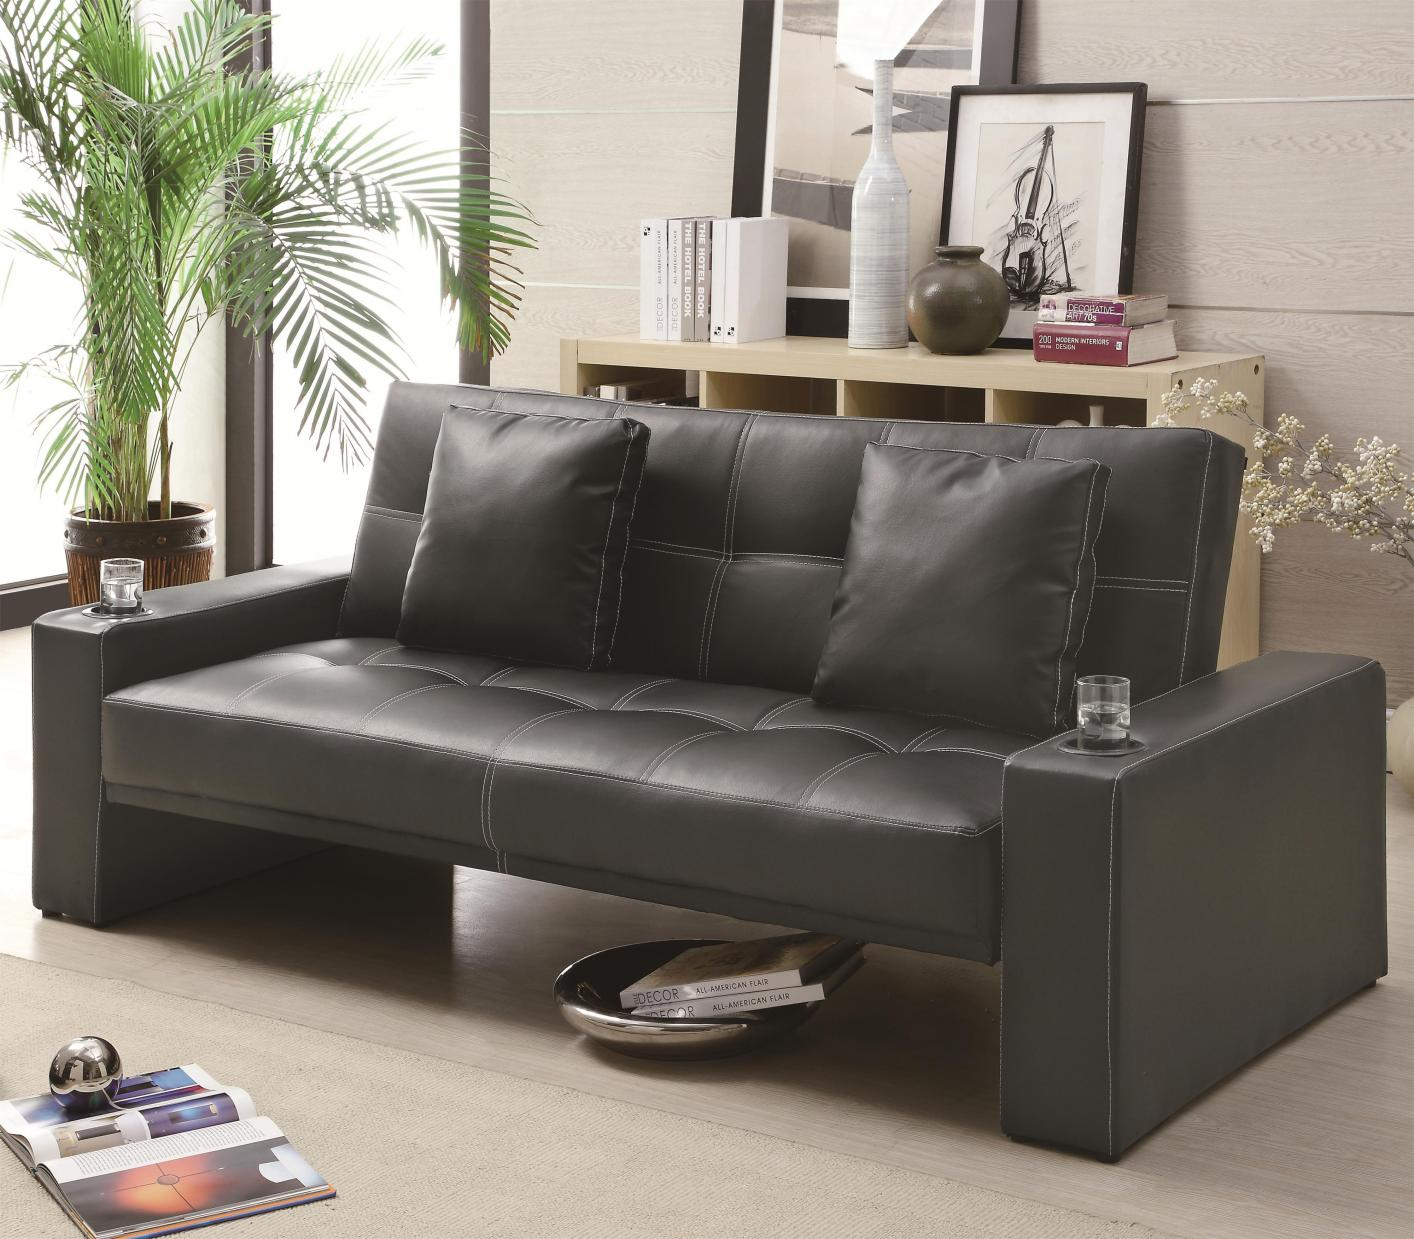 Sofa Bed For Sale In Quezon City: Coaster 300125 Black Leather Sofa Bed